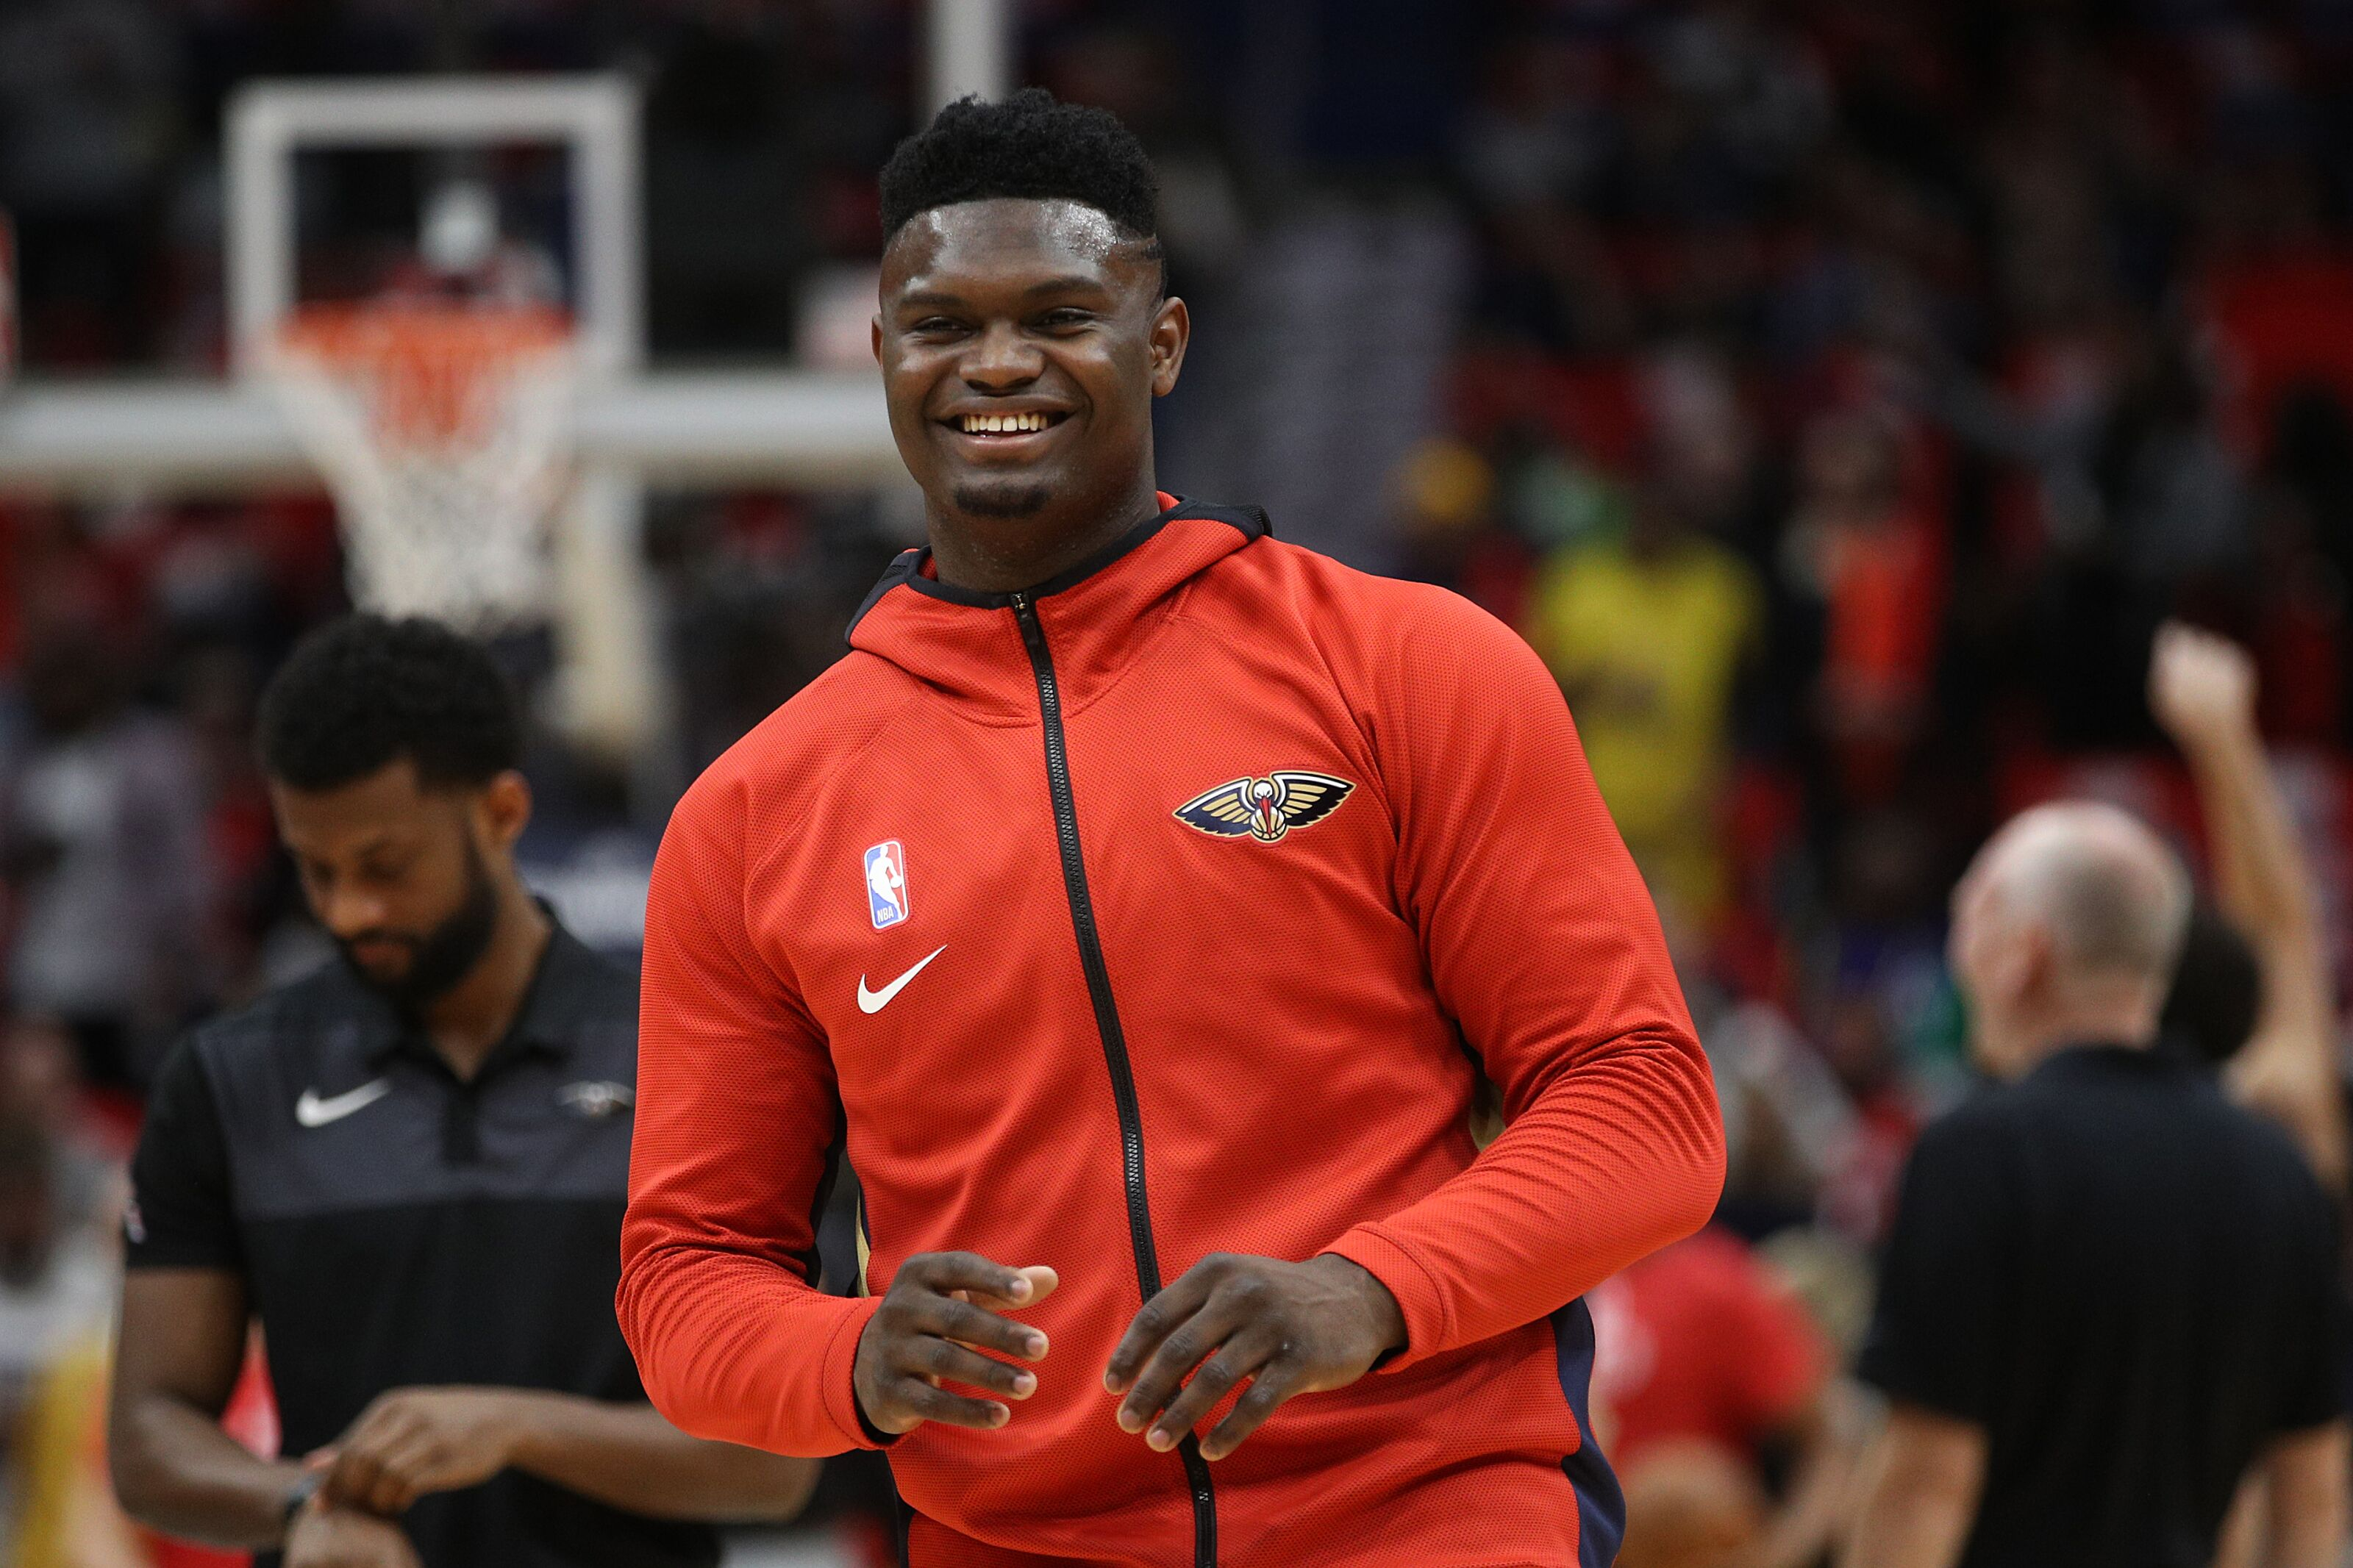 Zion Williamson continues to dominate, showing glimpses of greatness